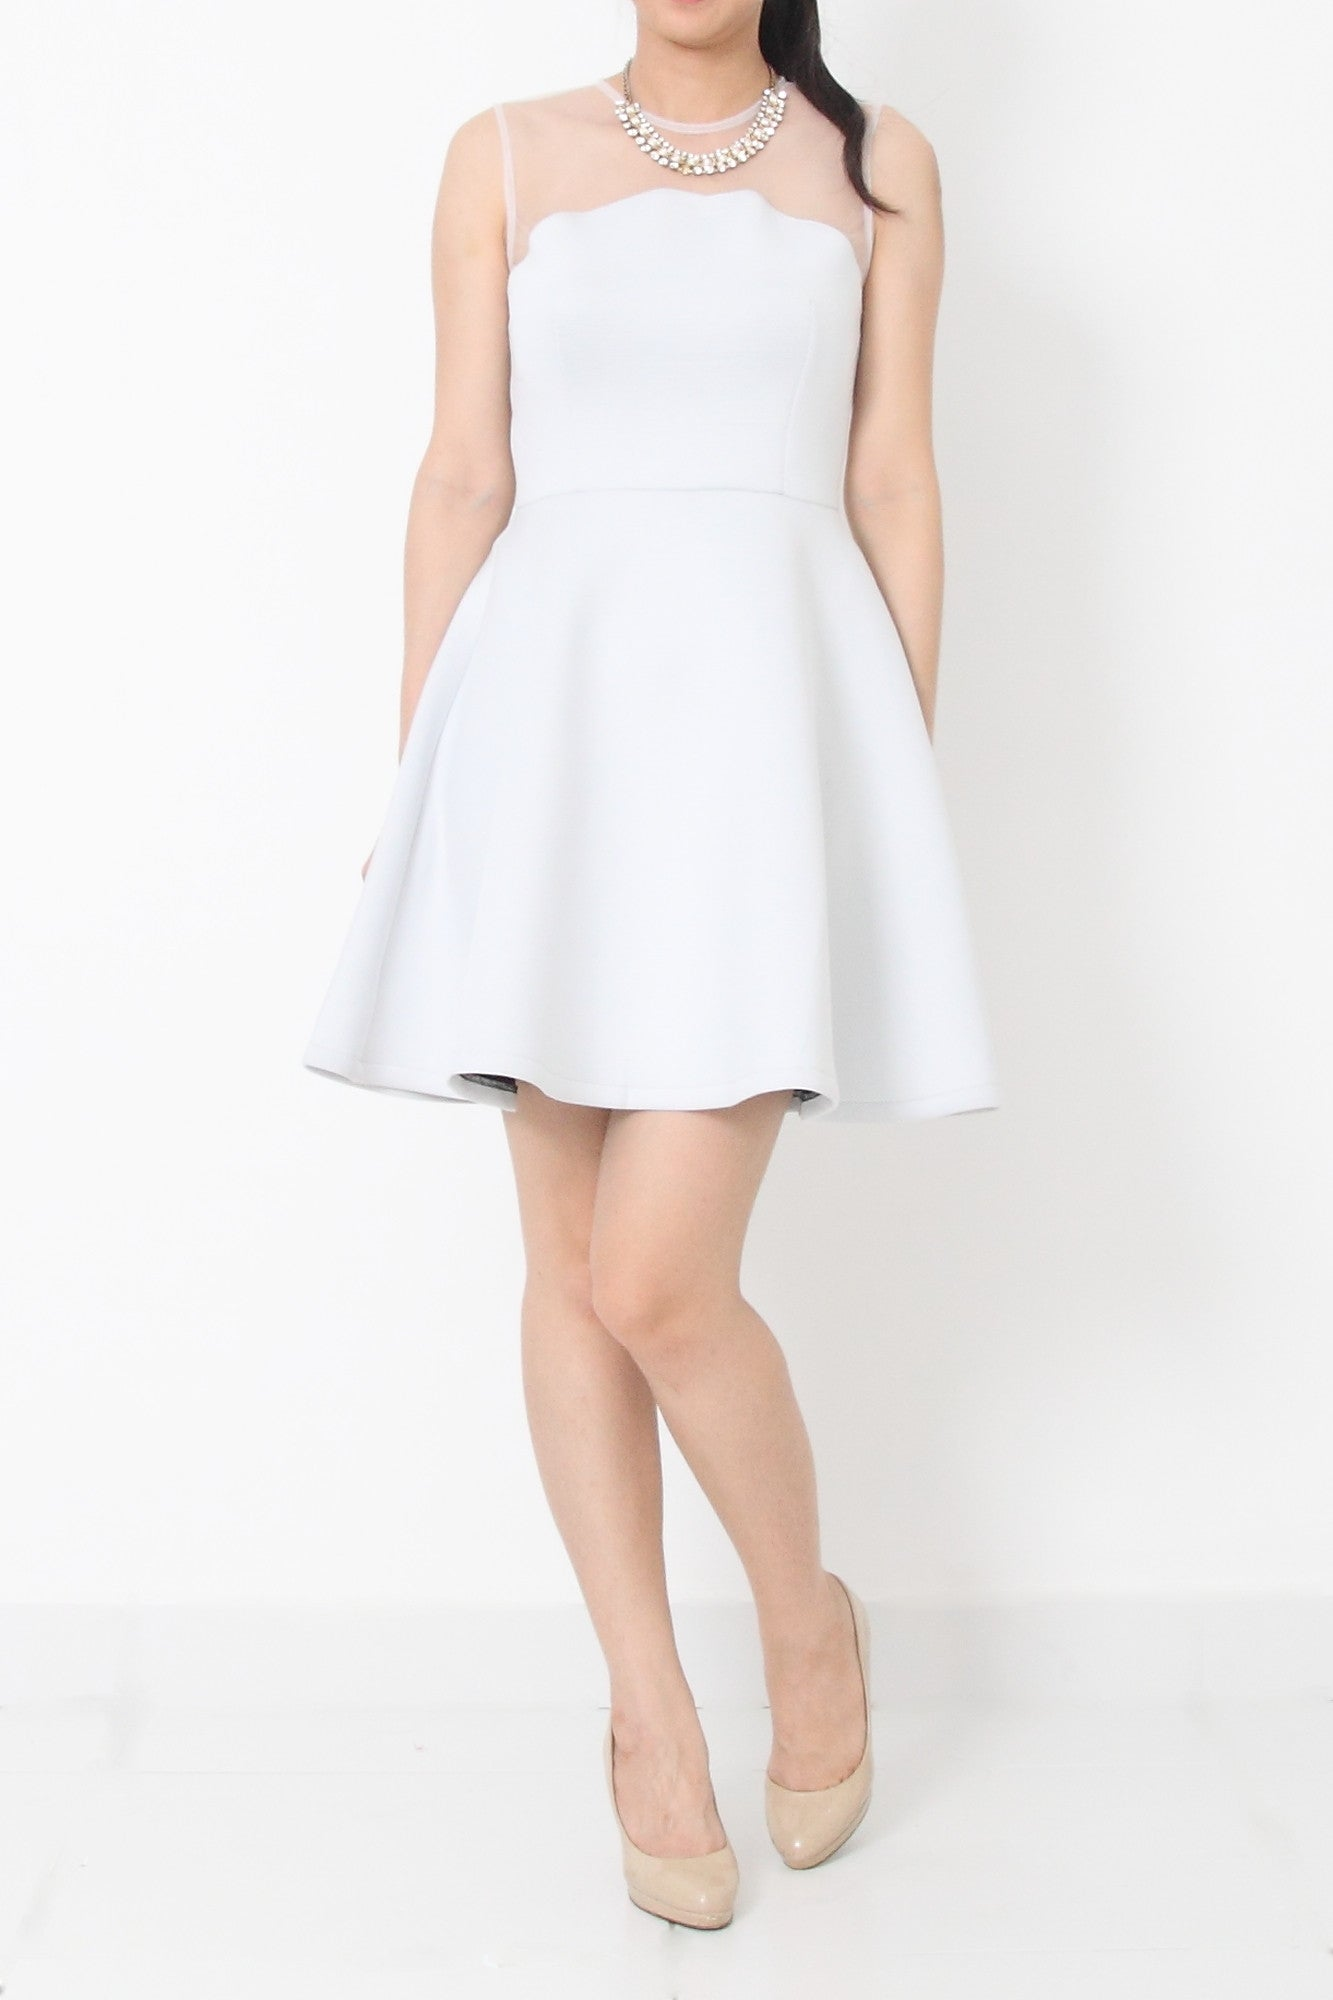 KYLA Fit and Flare Neoprene Cocktail Dress White - L